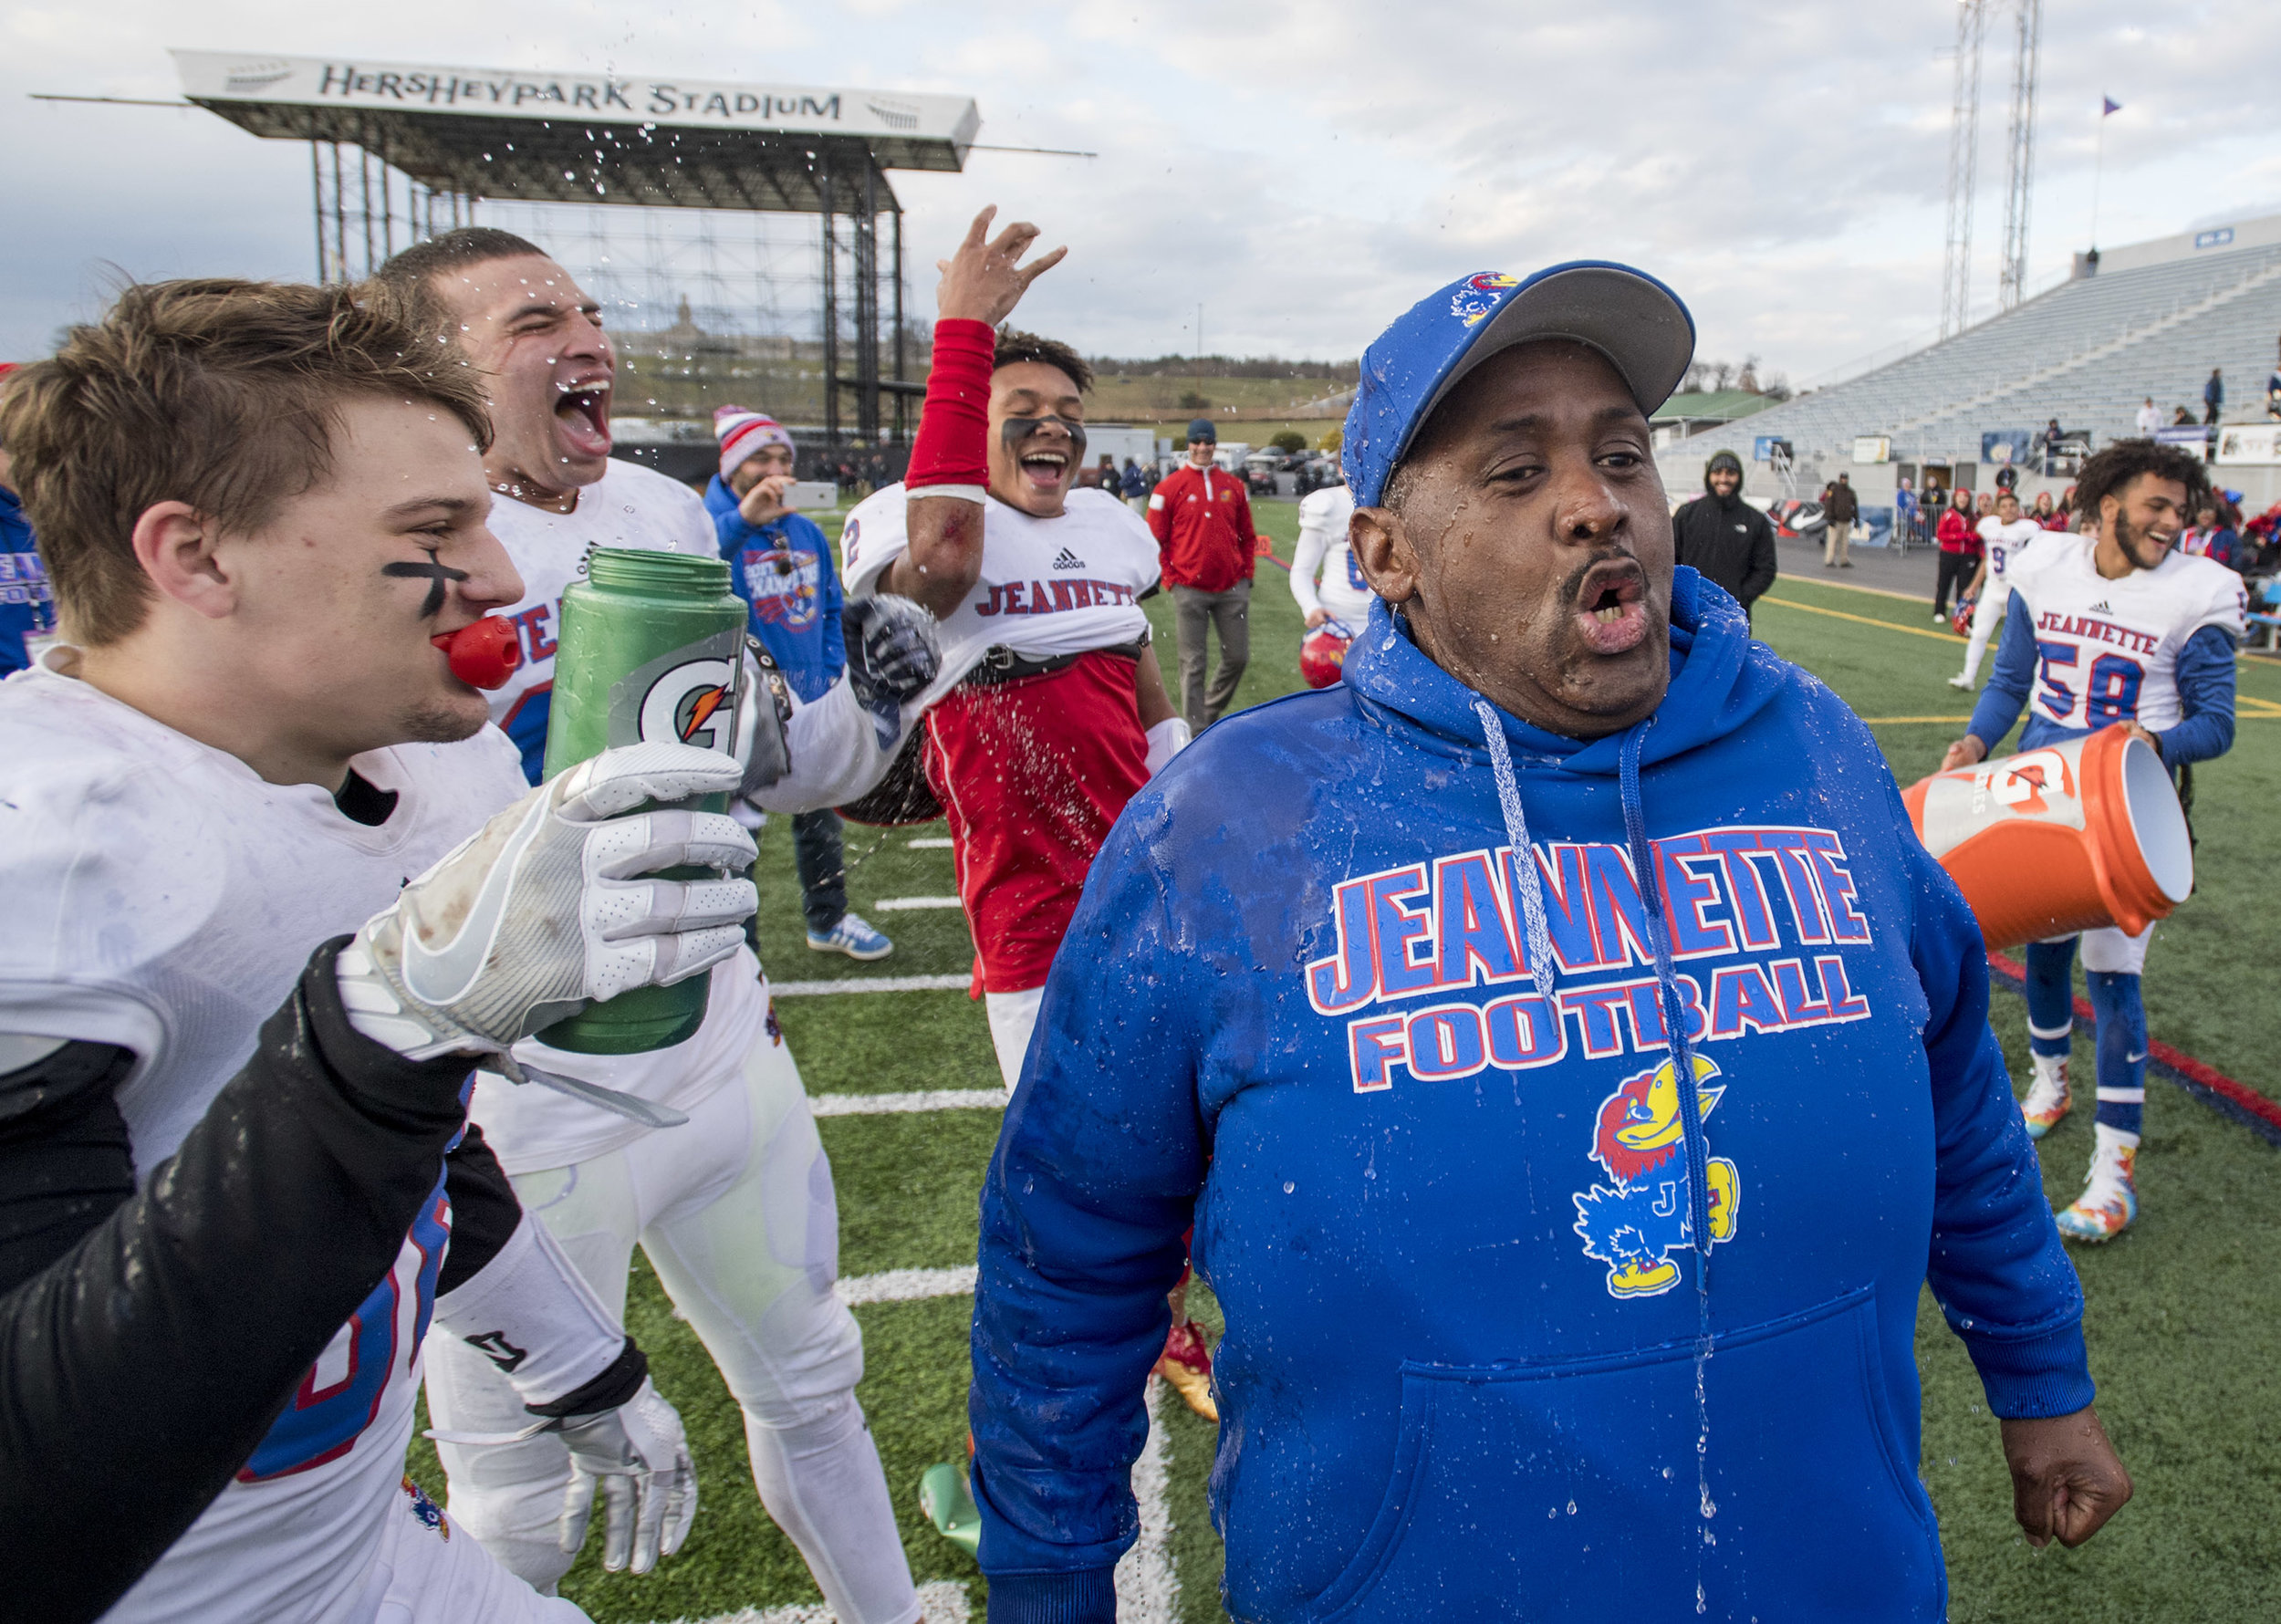 Jeannette head coach Roy Hall reacts after being doused with water after beating Homer-Center 42-12 during the PIAA Class A championship on Thursday, Dec. 7, 2017 at Hersheypark Stadium. (Steph Chambers/Post-Gazette)